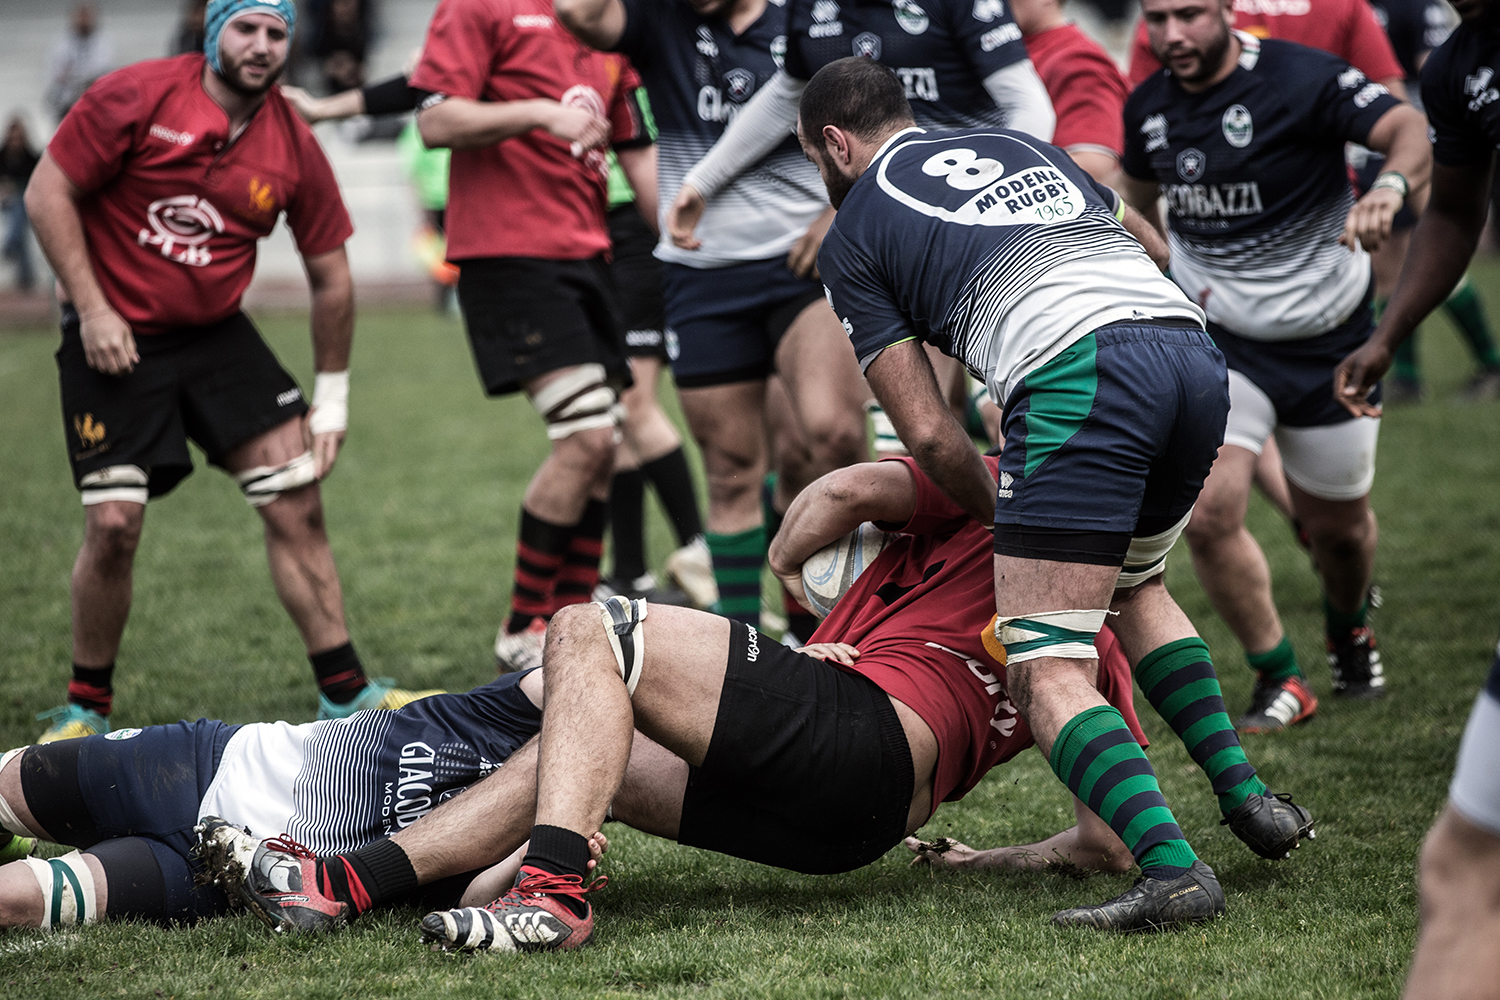 rugby_photograph_12.jpg